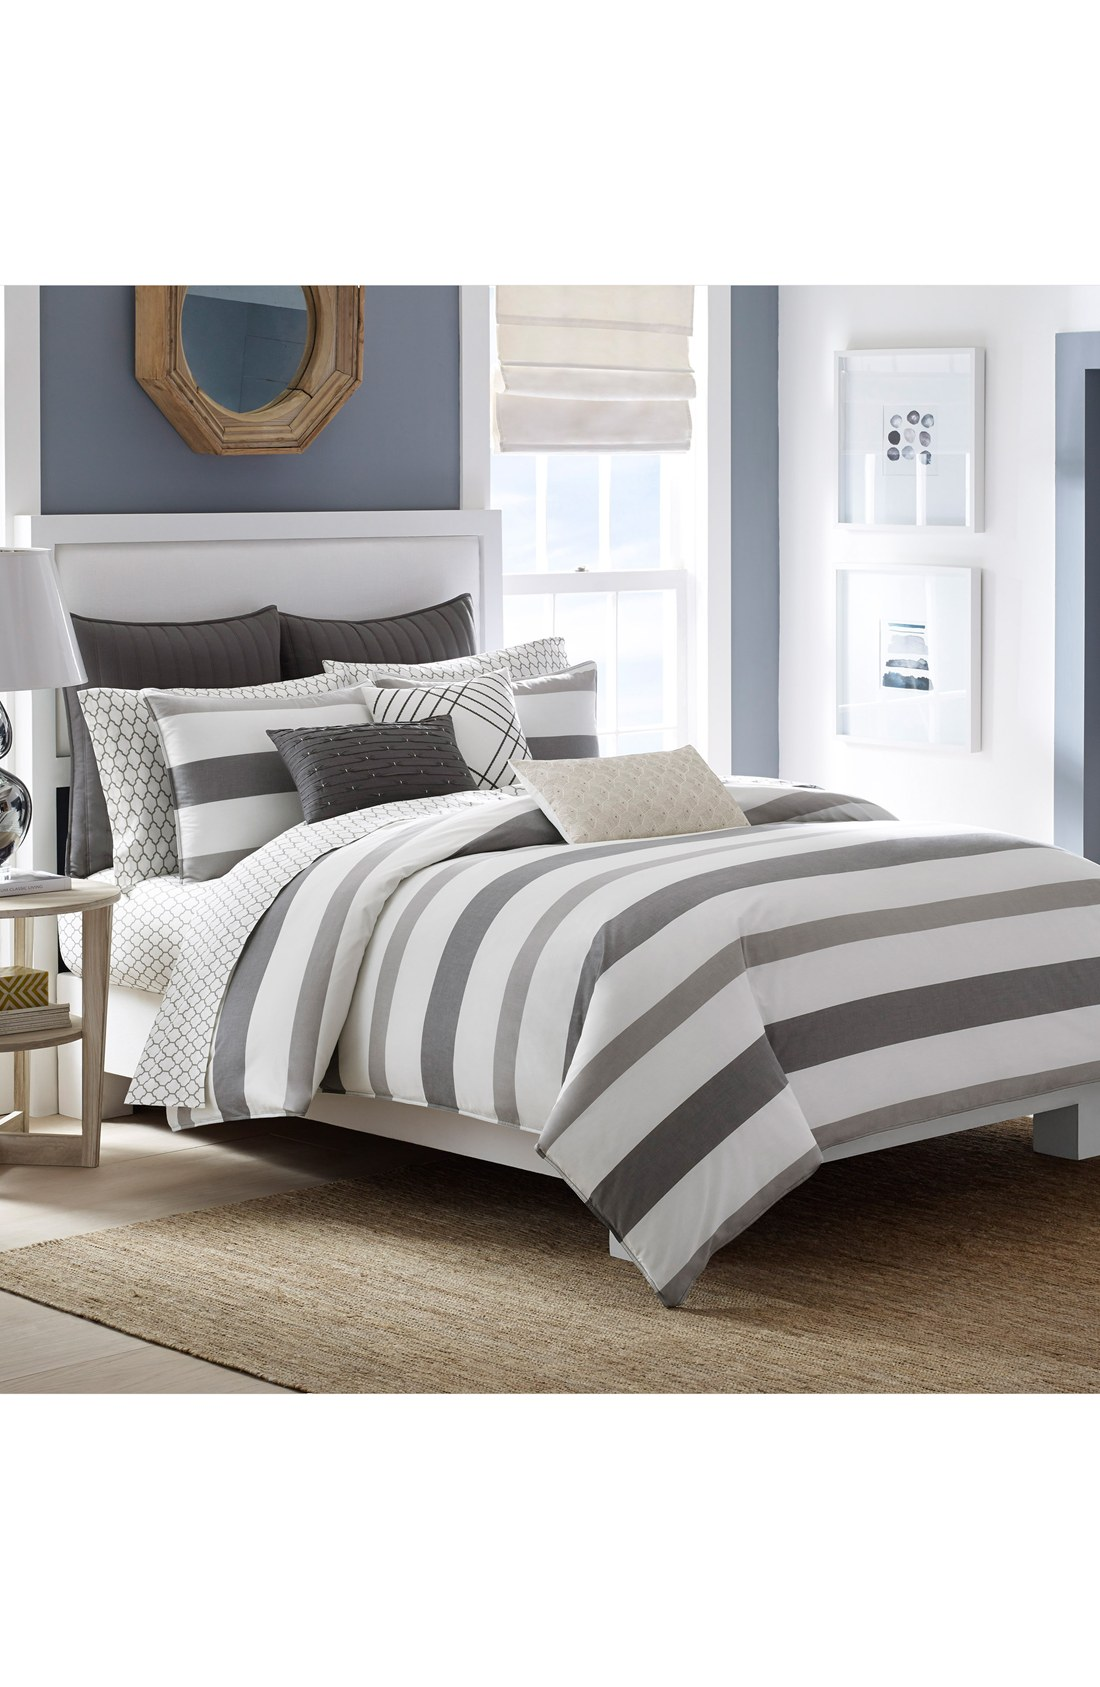 Bed Bath and Beyond Comforter Sets | Grey Queen Duvet Cover | Queen Duvet Covers